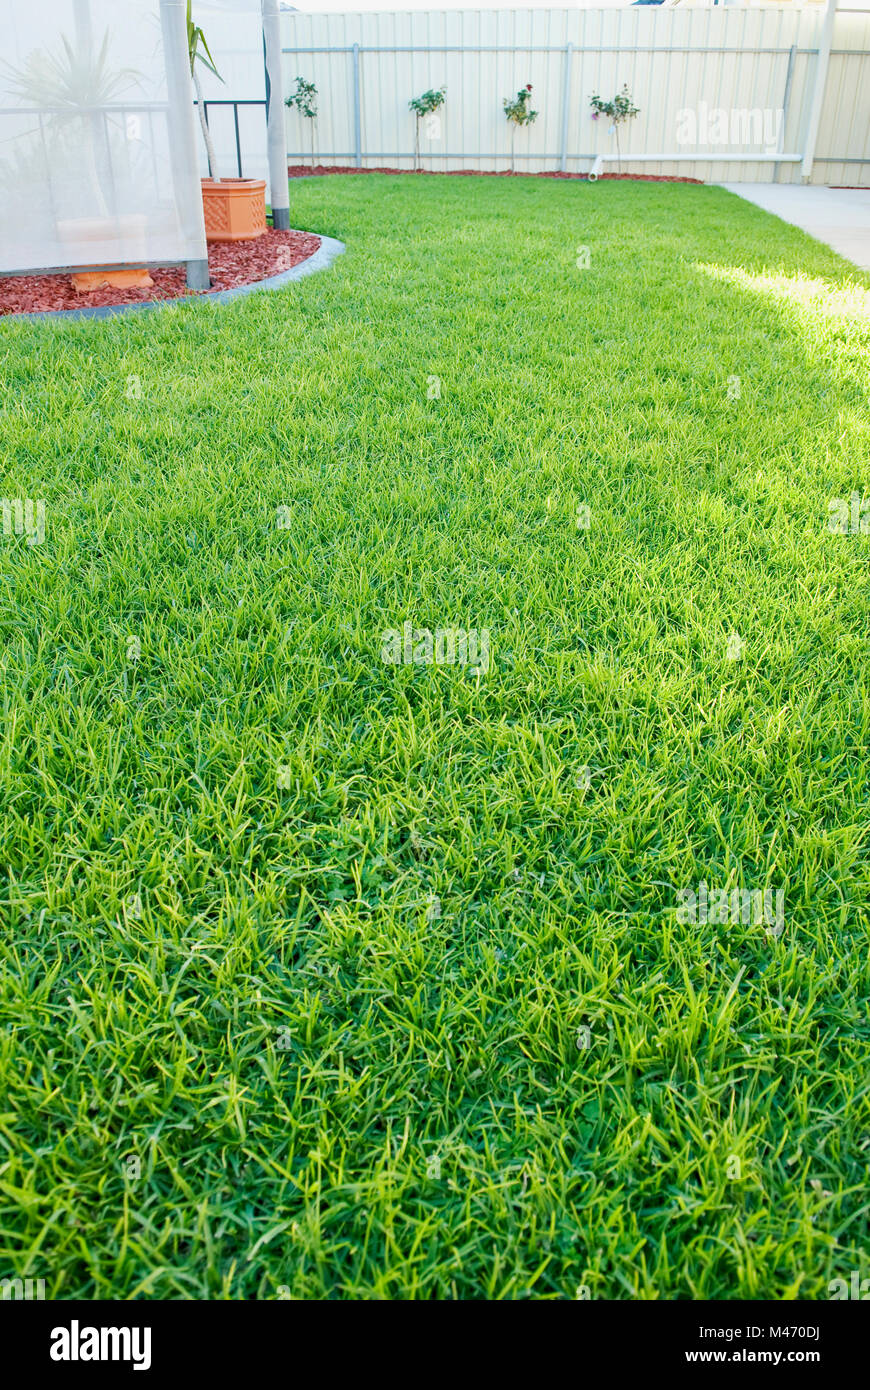 Healthy looking backyard garden lawn, South Australia Stock Photo